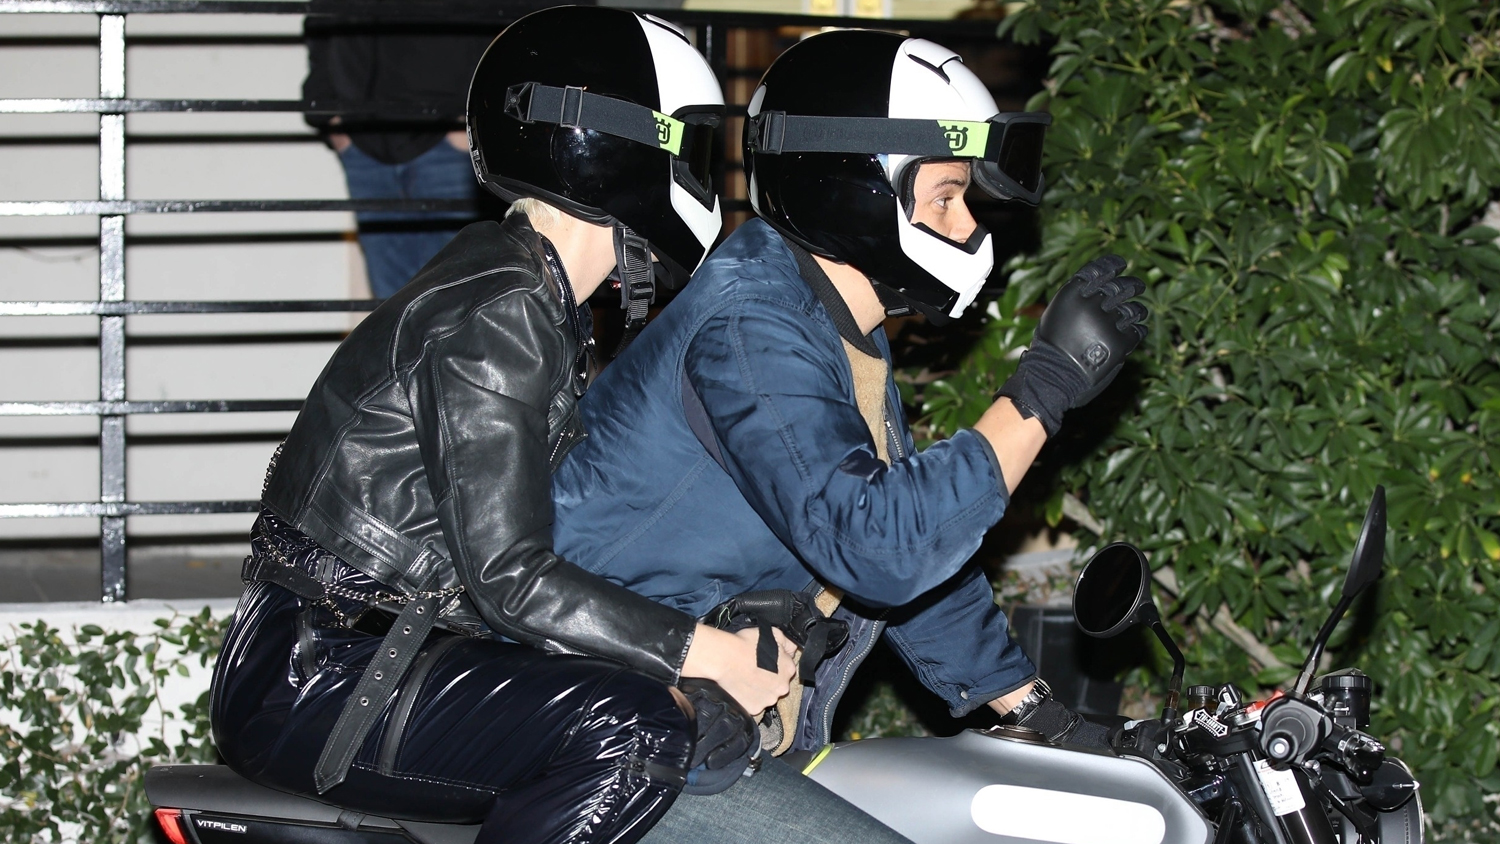 86777532a746 Katy Perry & Orlando Bloom Arrive on Motorcycle for Jennifer Aniston's  Birthday Party